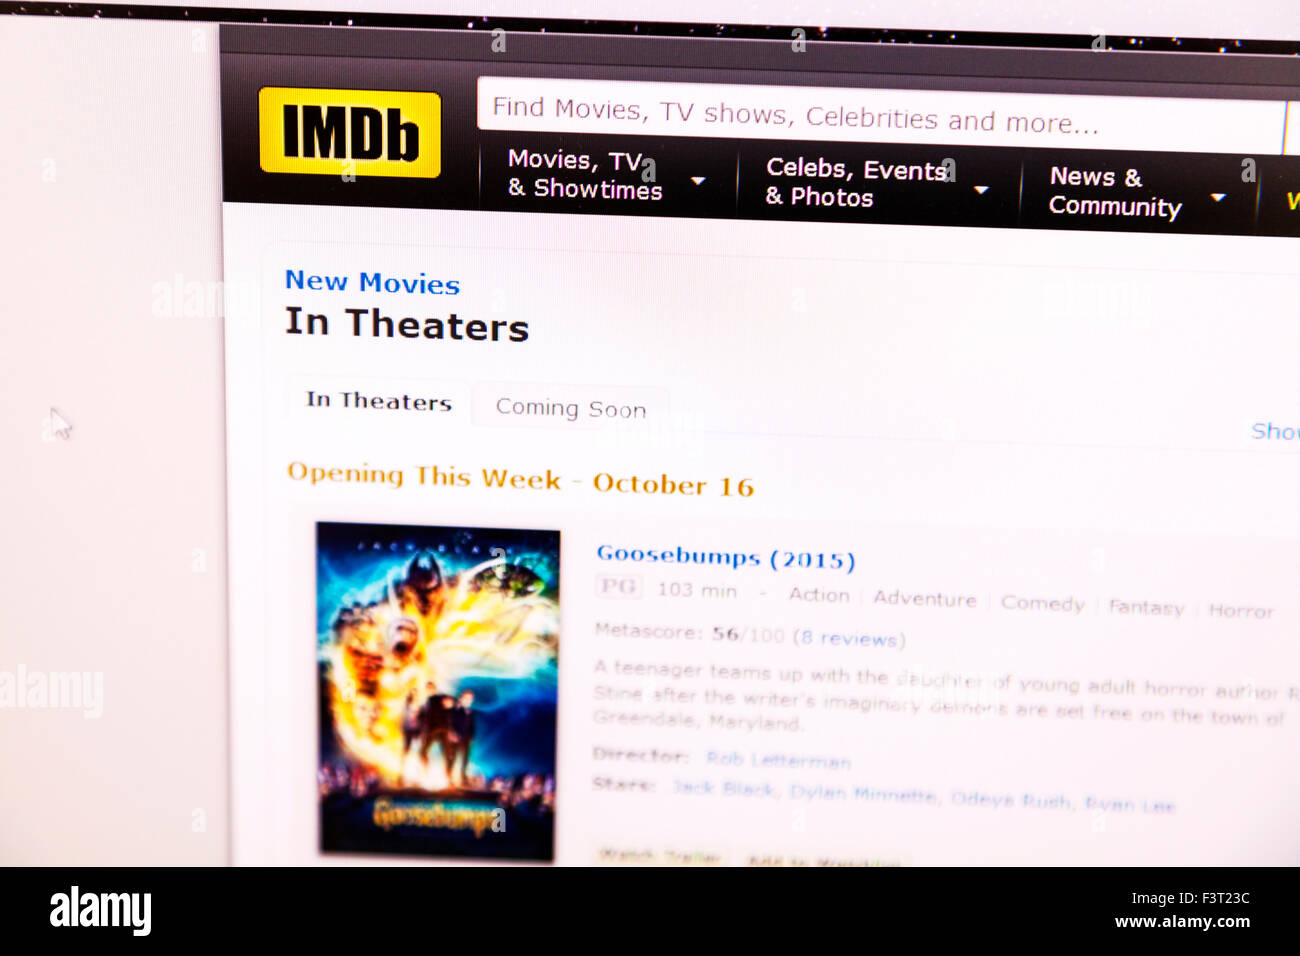 Movies Theaters Stock Photos & Movies Theaters Stock Images - Alamy